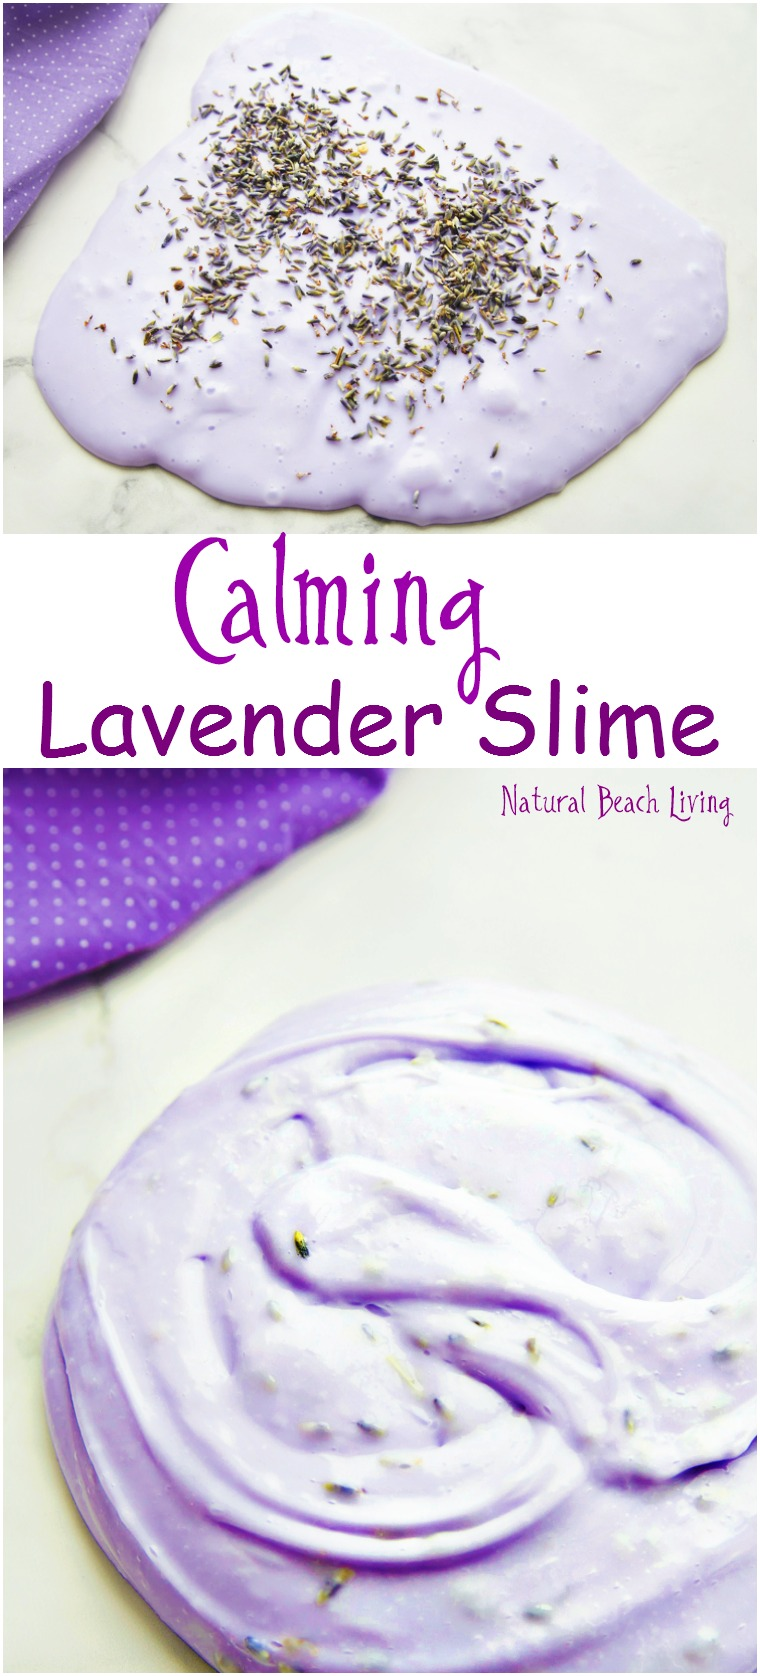 Calming Lavender Slime Recipe To Try Right Now, Anti Stress Slime Recipe, aromatherapy Slime Recipe, The Best Liquid Starch Slime, The Best Calming Lavender Slime Recipe, How to make The Best Calming Jiggly Slime Recipe, how to make Anxiety Slime, Slime Recipe with essential oils, A Wonderful Therapeutic Slime Recipe, Slime Science, Plus Slime Videos with How to Make Slime Instructions and DIY Slime Recipes